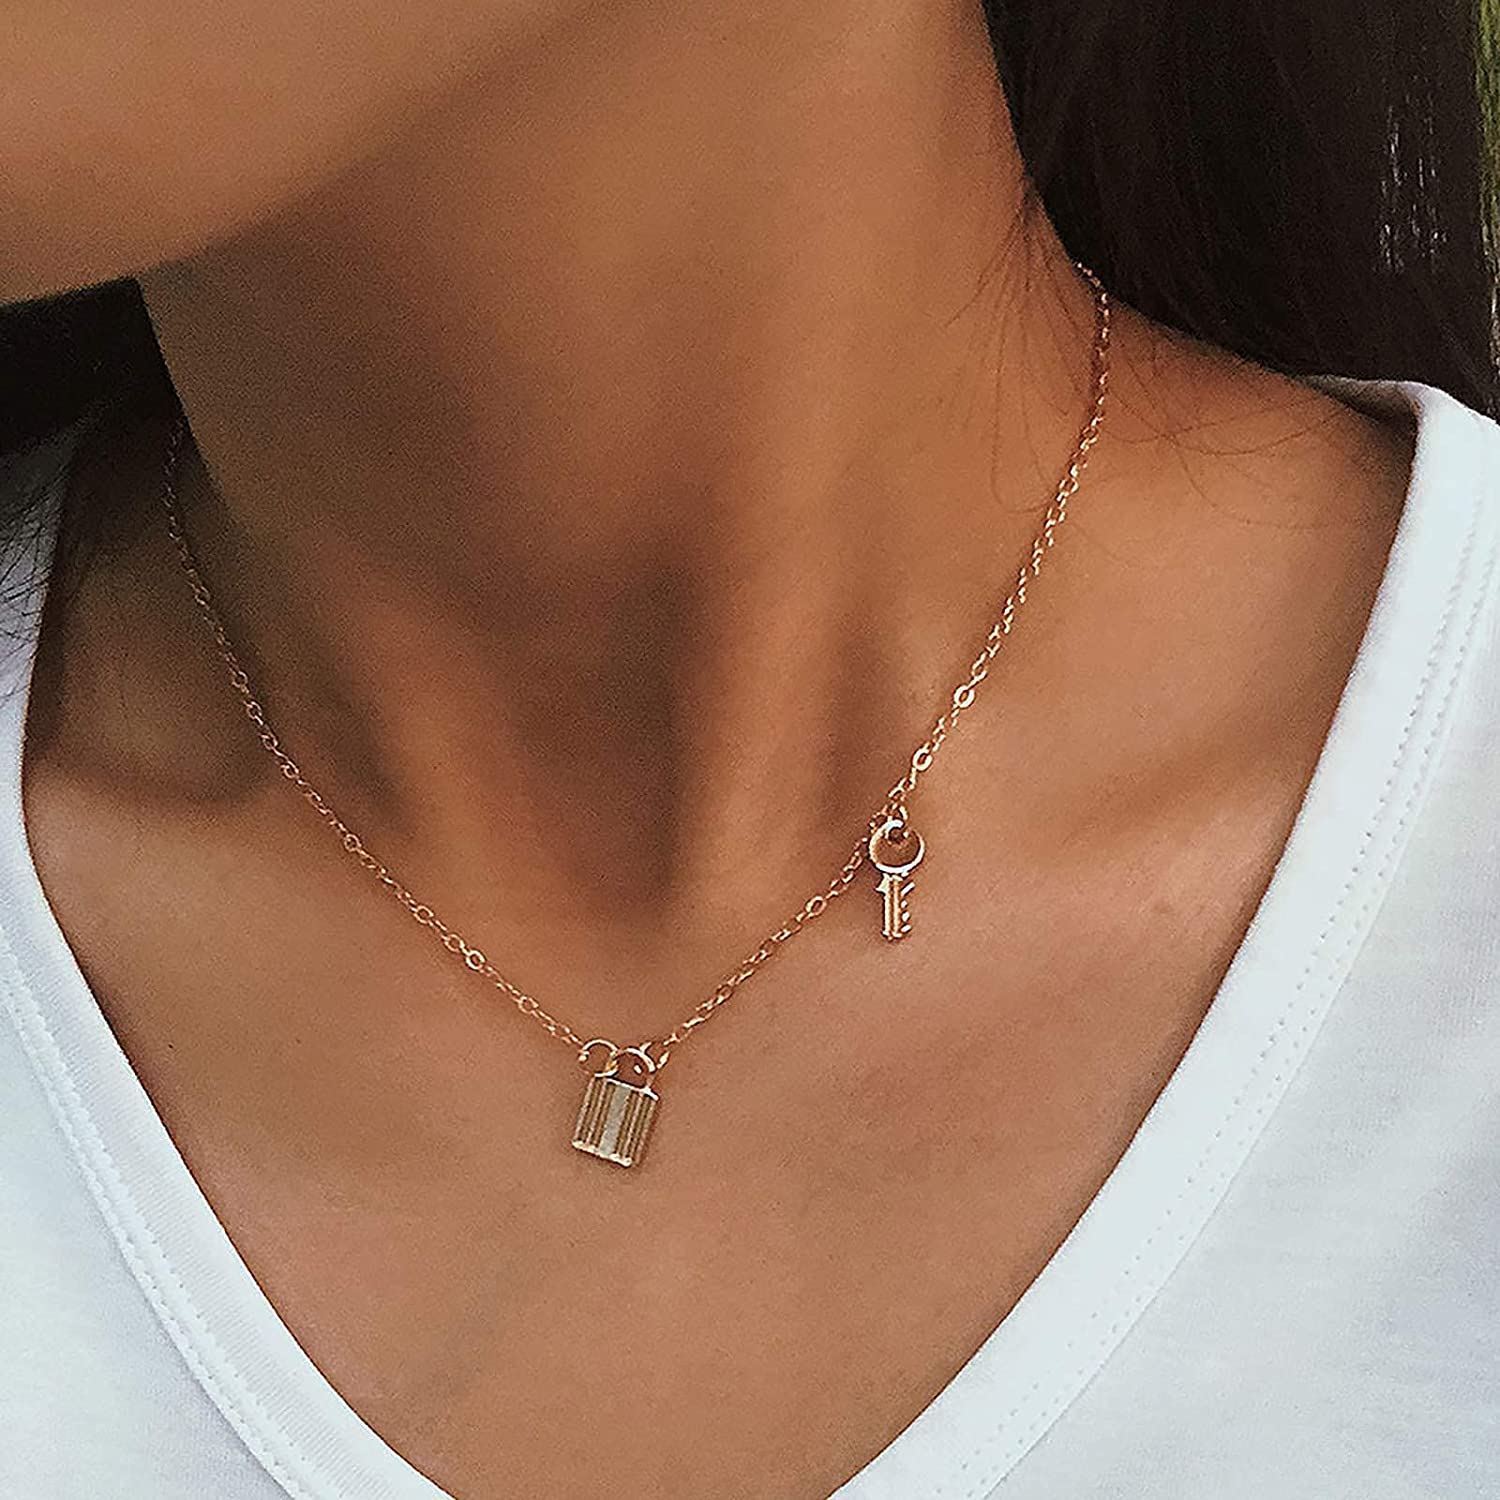 KINGVON Personalized Simple Temperament Lock Necklace, Retro Creative Lock-Shaped Key Combination Clavicle Chain,for Women and Girl,Gold